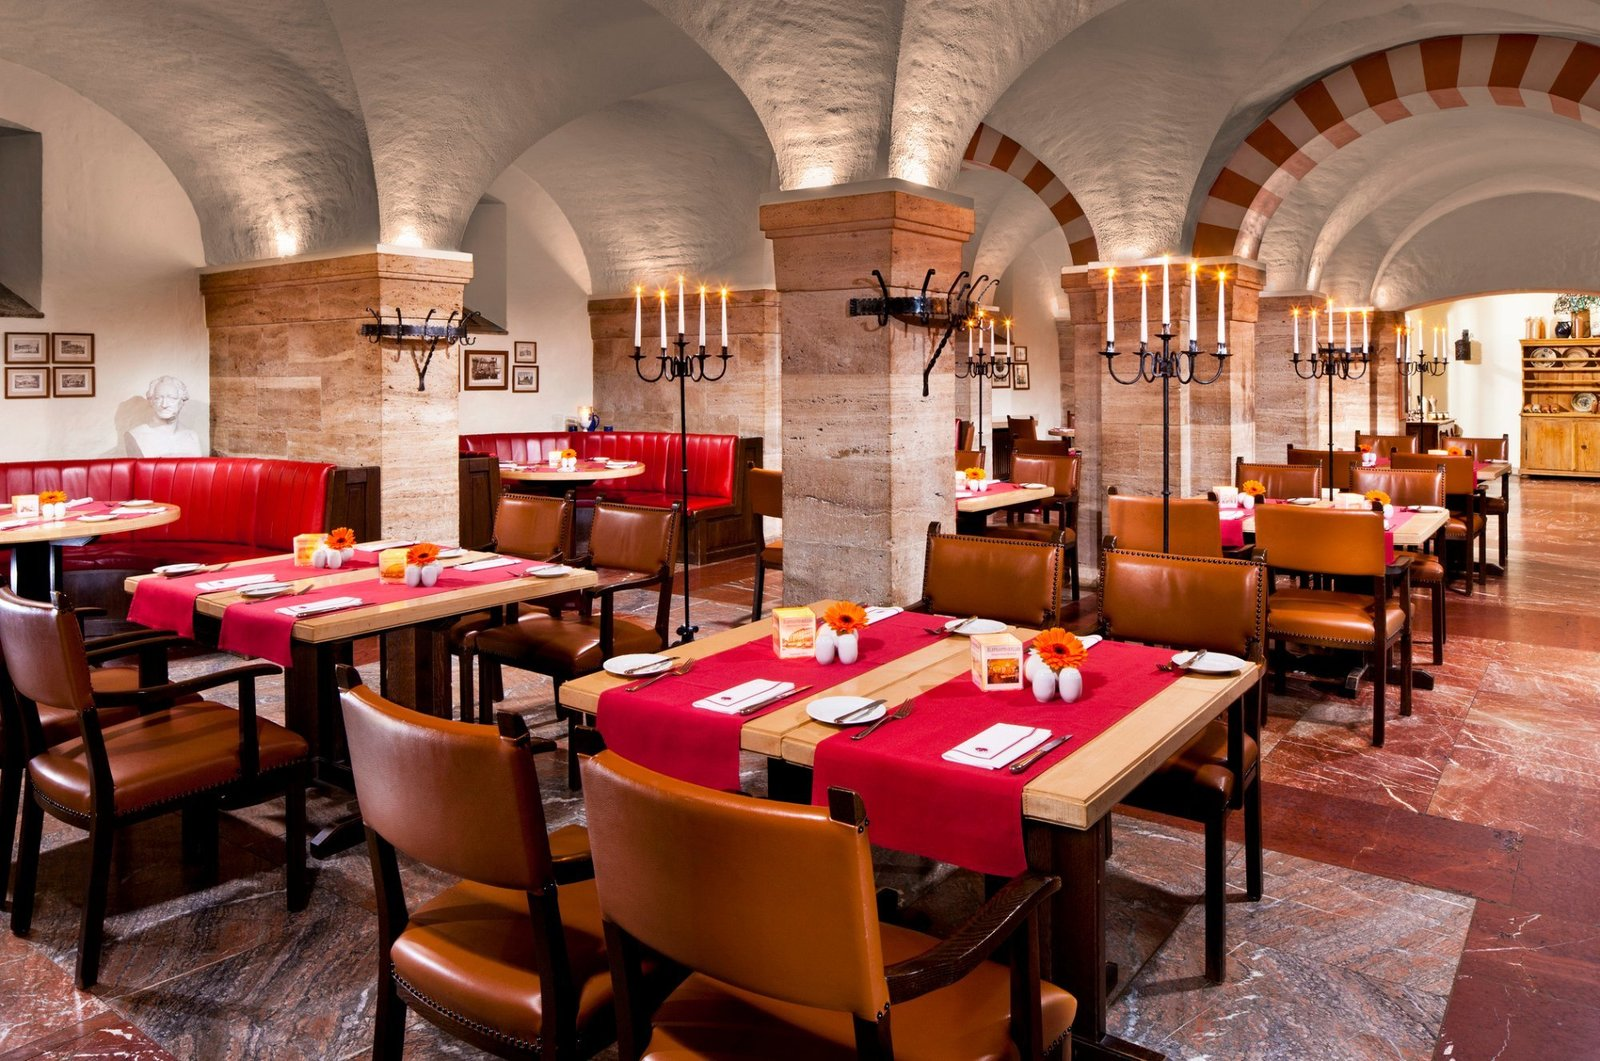 Dining Room, Accent Lighting, Chair, Table, and Floor Lighting  Hotel Elephant